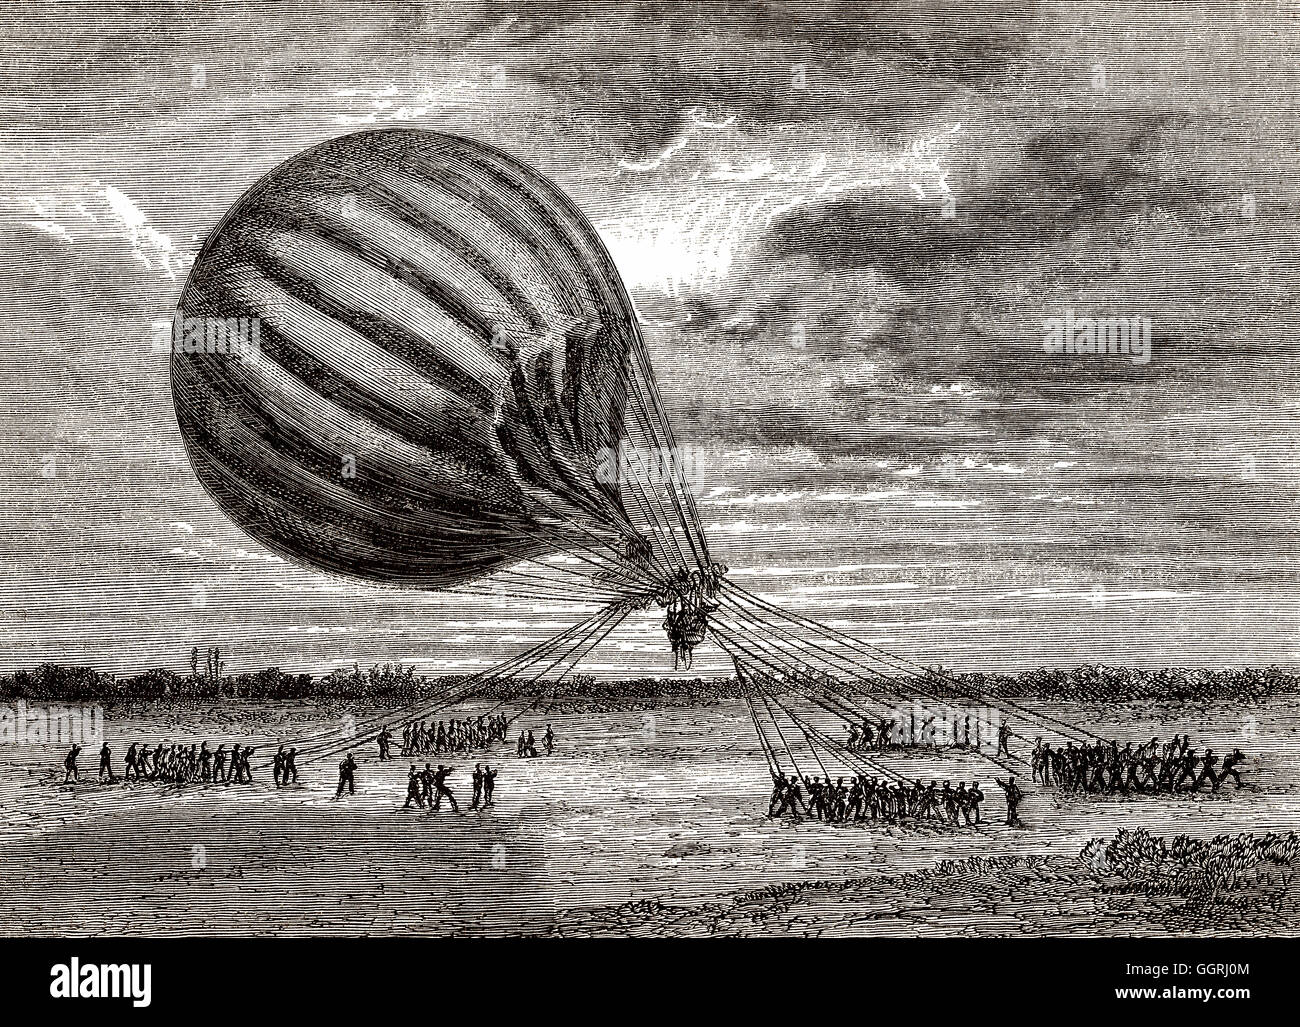 Unguided balloon mail transport during the Siege of Paris 1870-1871 - Stock Image